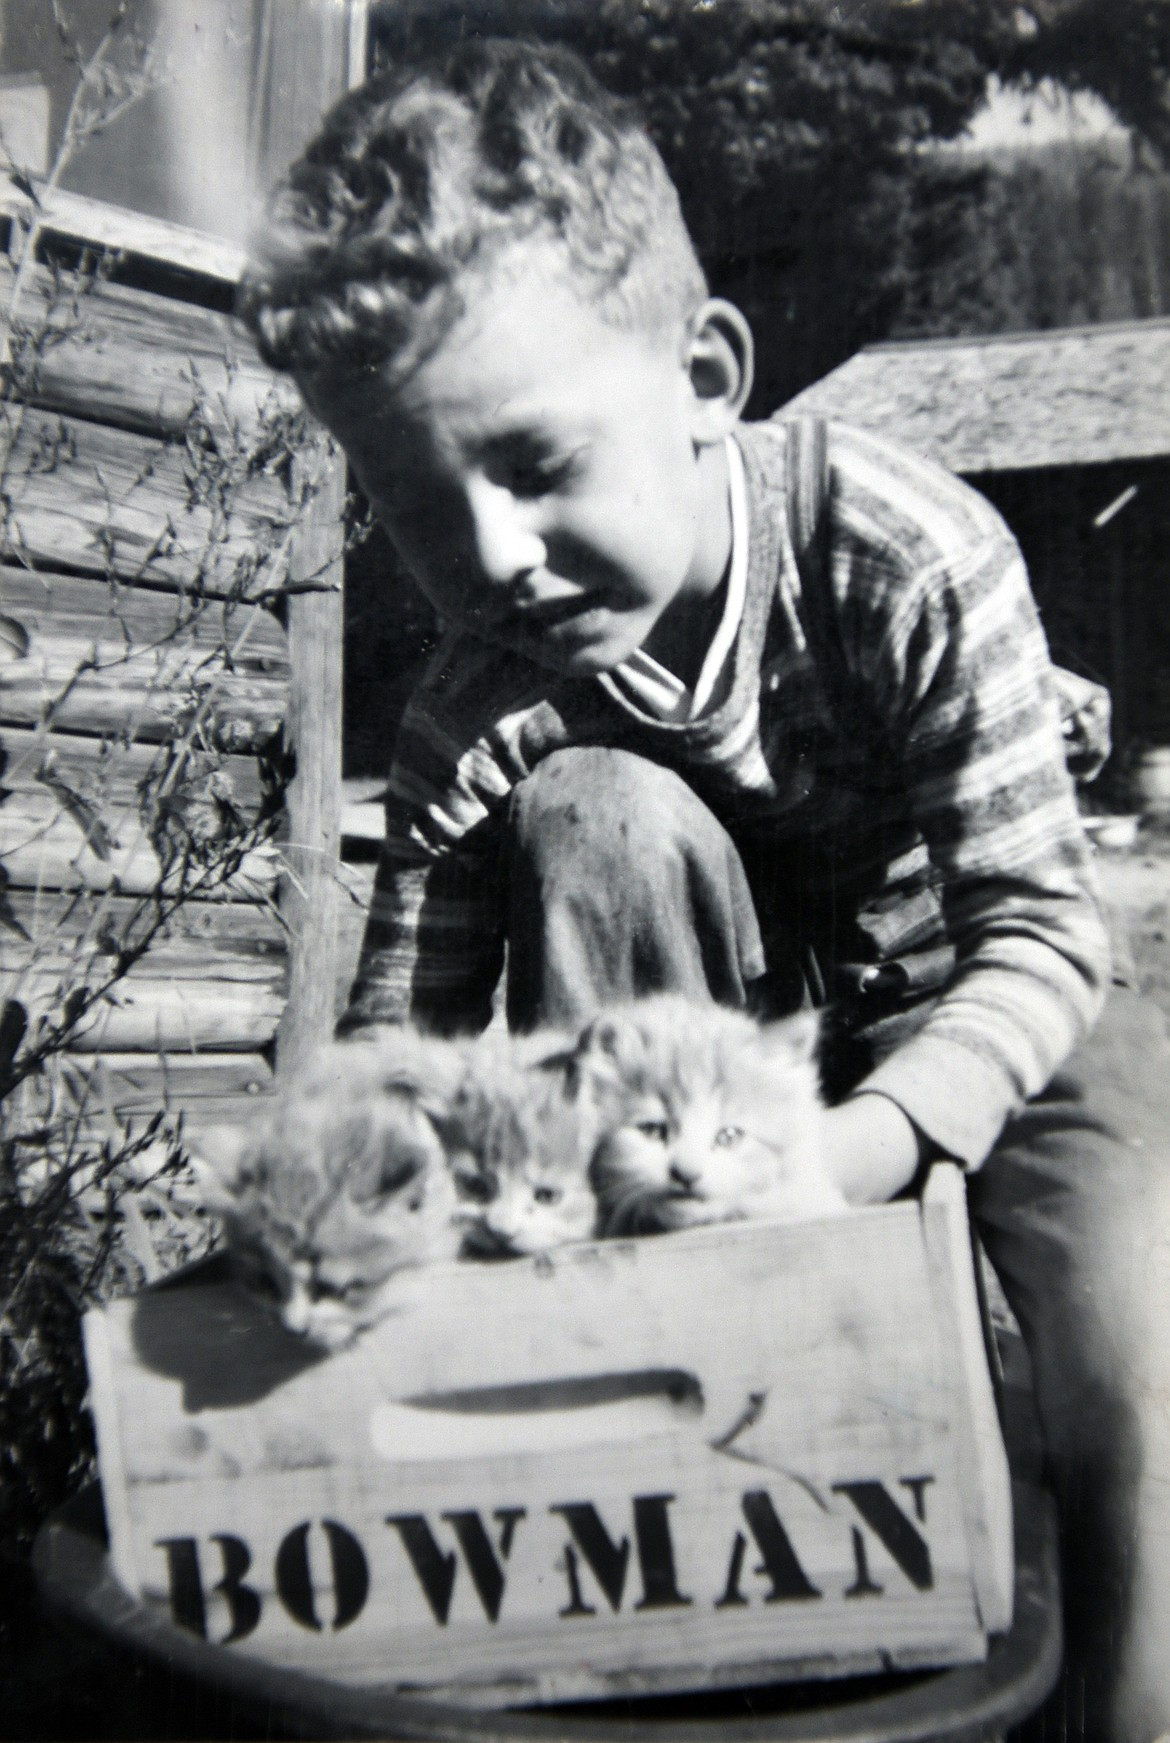 A young Jerry Bowman carries a litter of kittens around the orchard in one of the family's cherry crates. (photo provided)